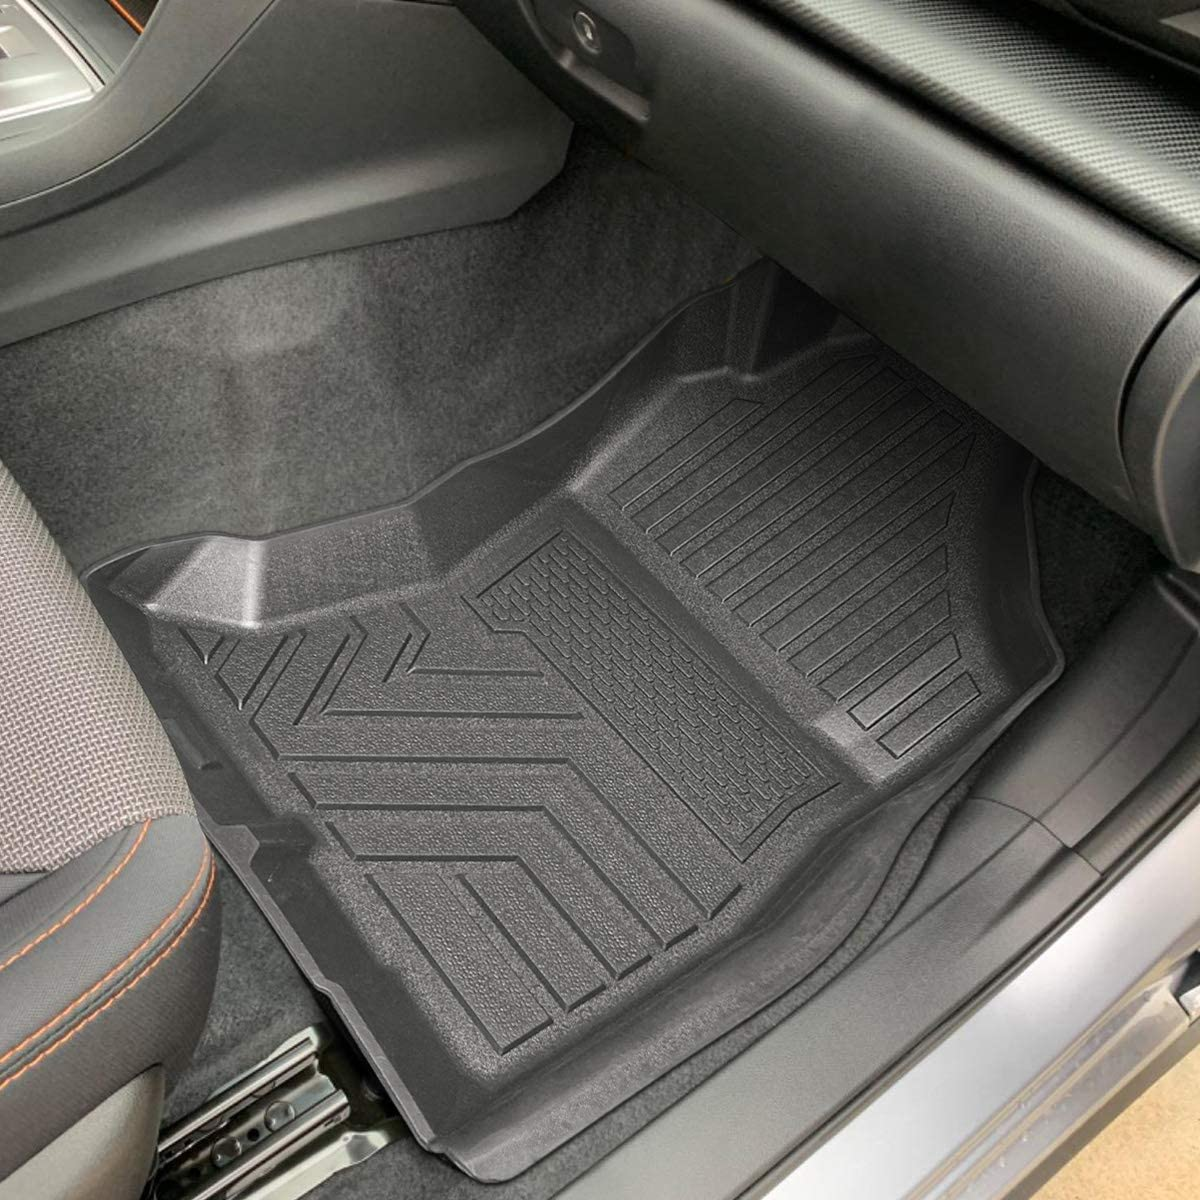 Pack of 3 Auovo Floor Mats Fits for Subaru Crosstrek 2018 2019 2020 /& Impreza 2017-2020 Accessories Complete Set All Weather Guard Protector Liners for Subaru XV